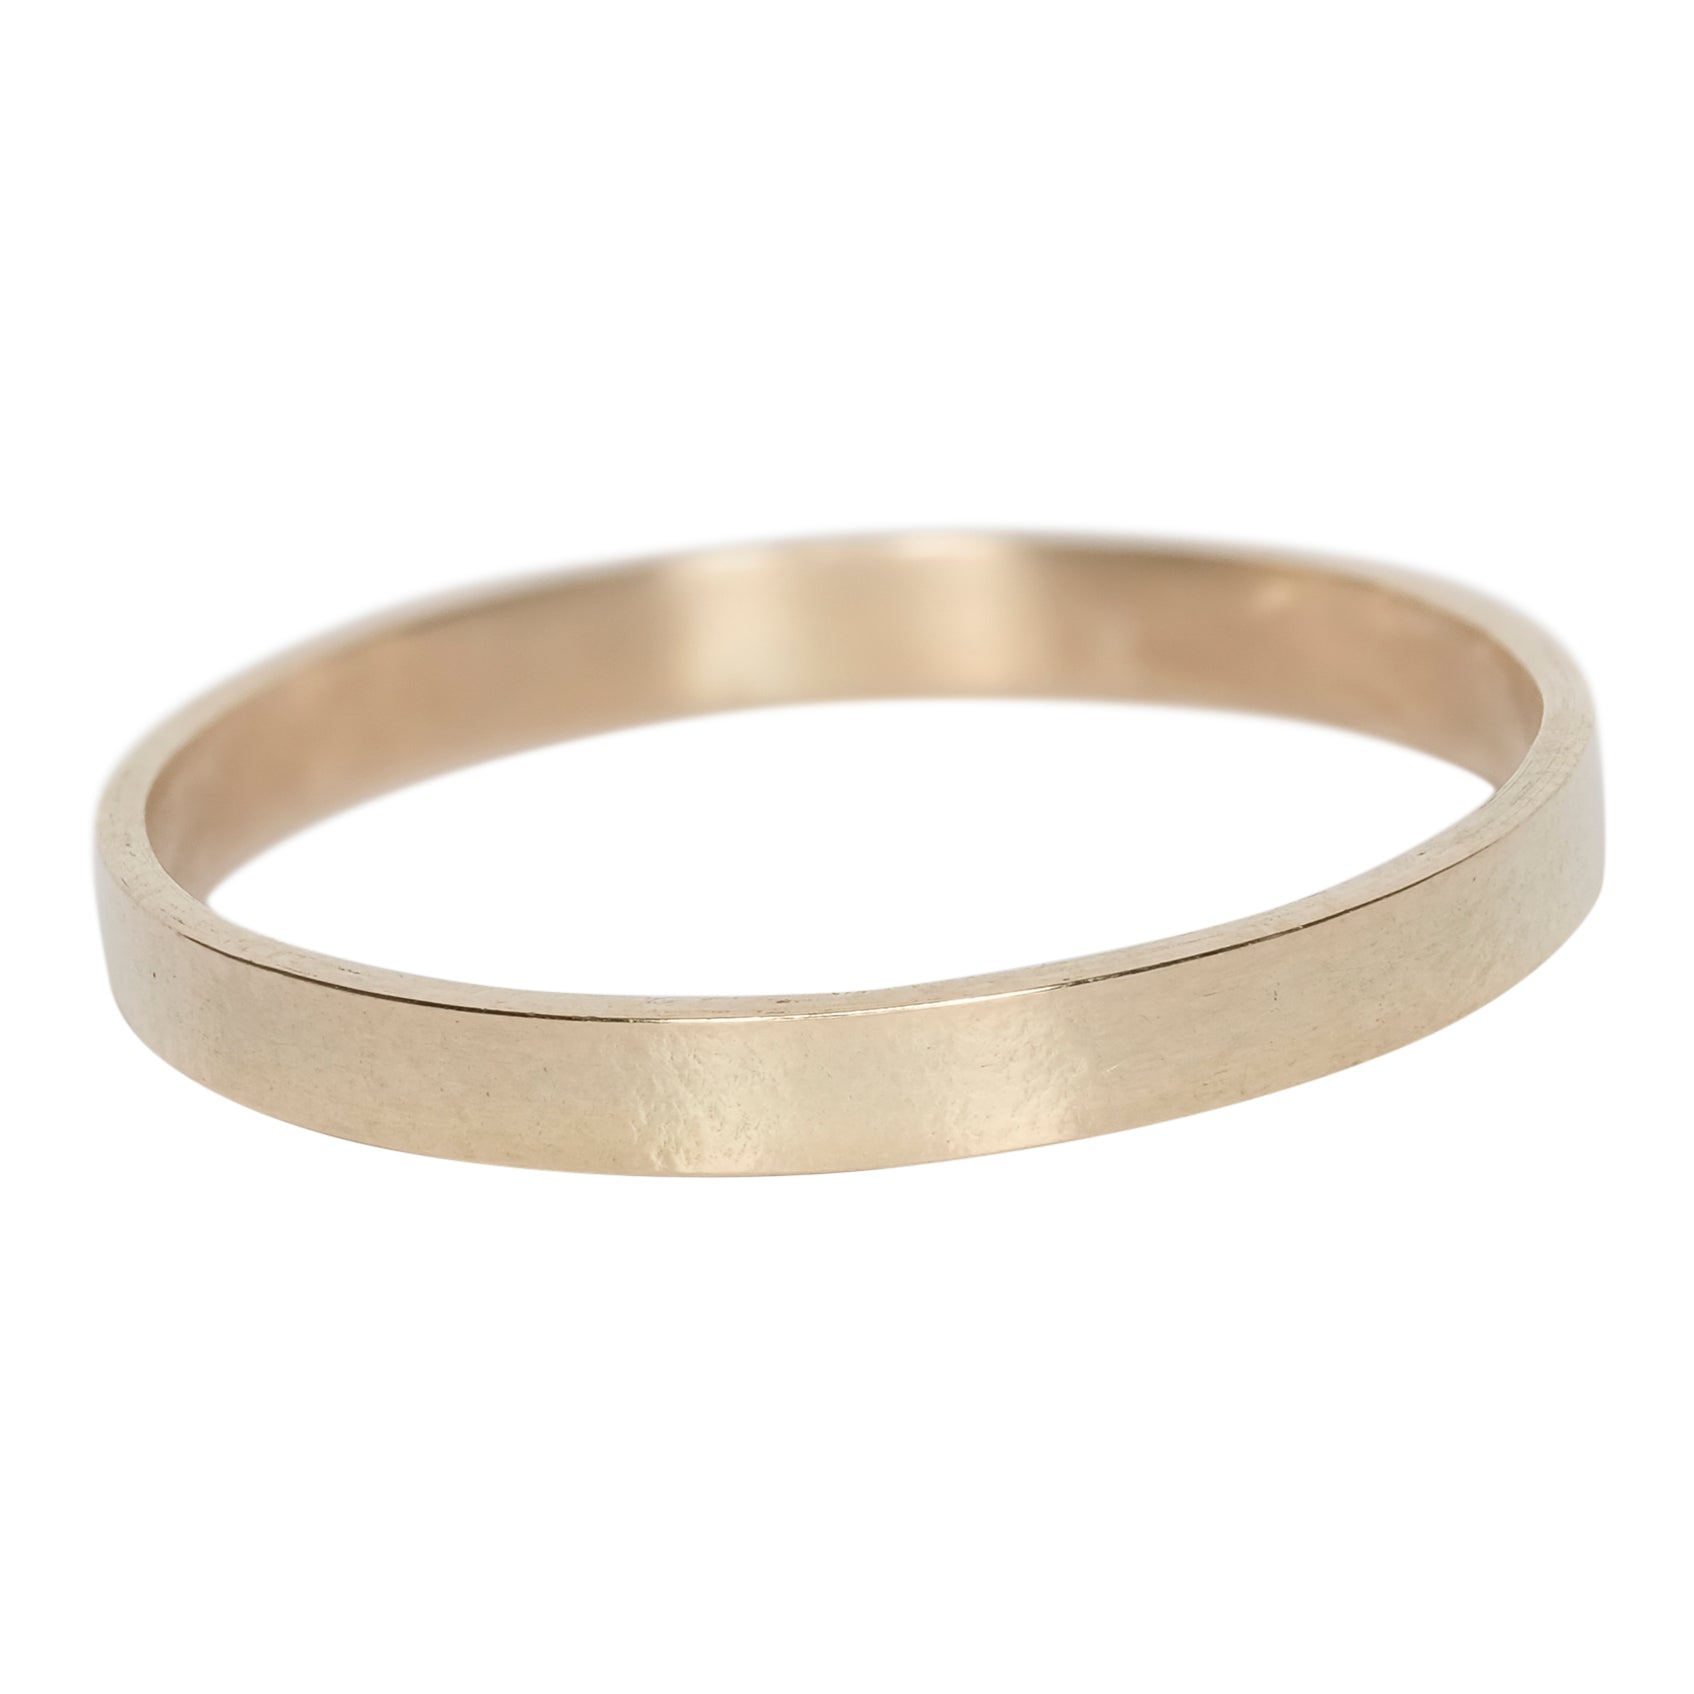 Wide imprinted band ring